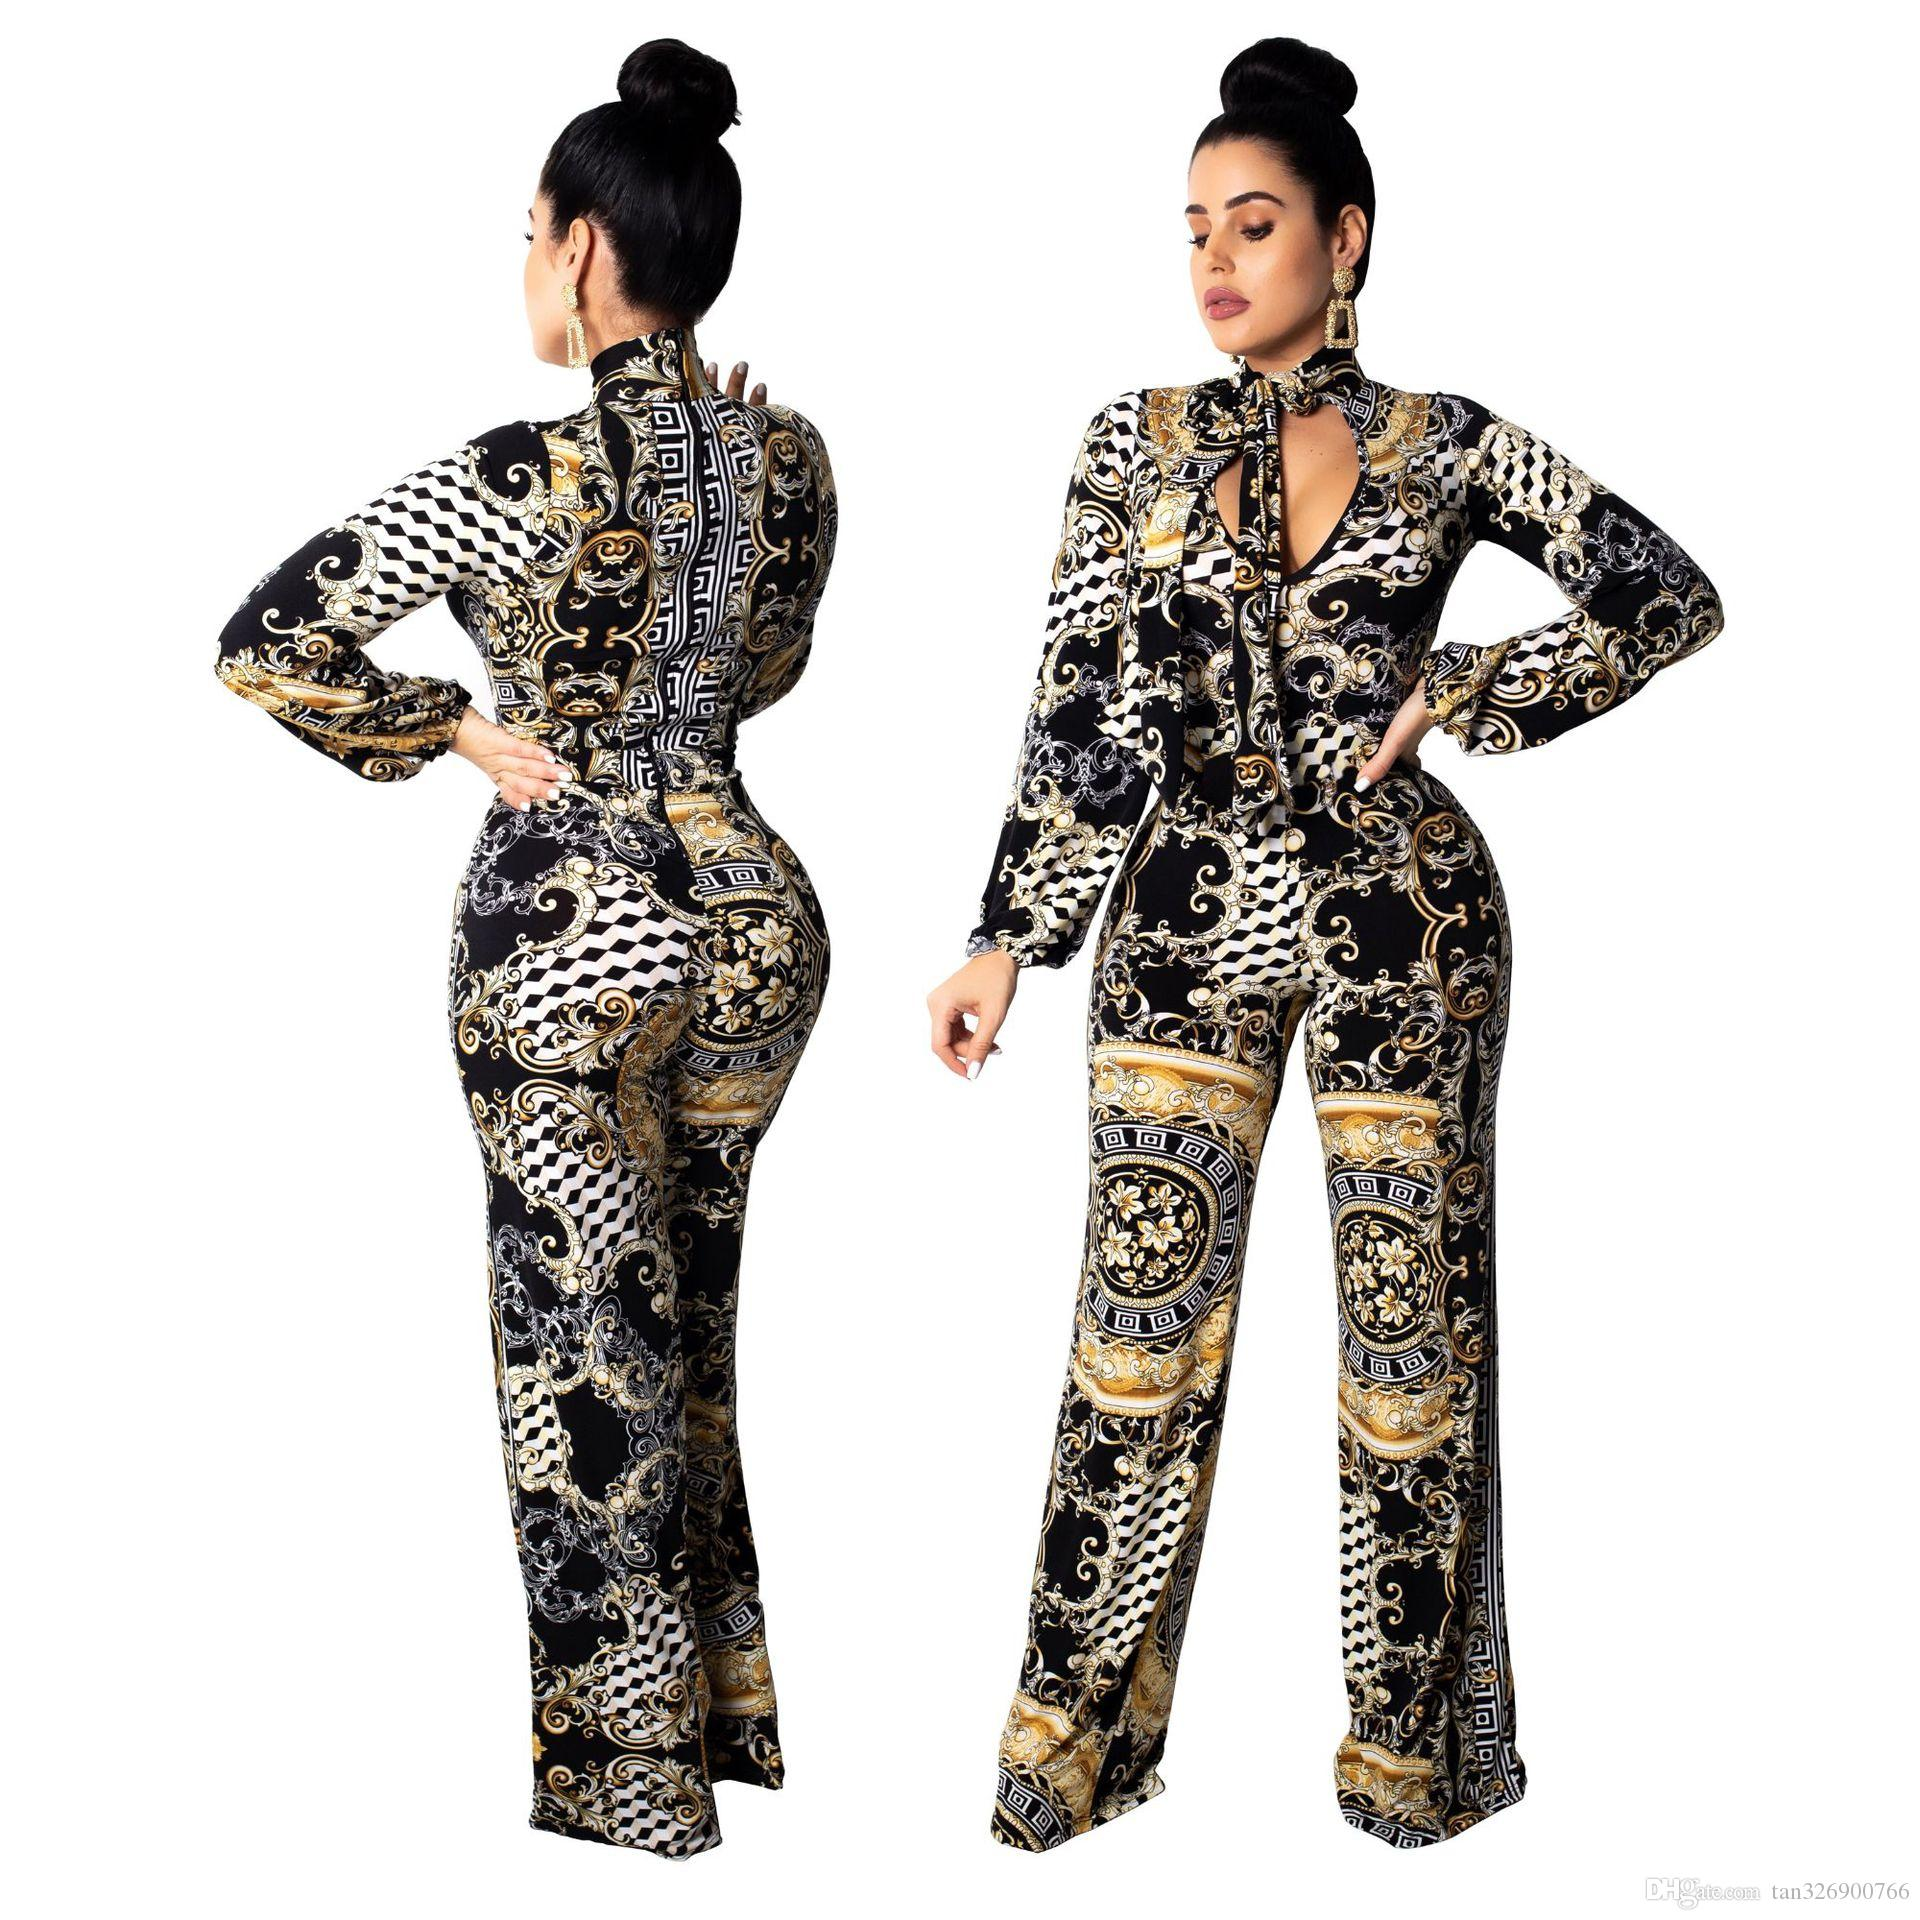 0e7740e2742 2018 winter models Amazon standard code Europe and the United States hot  fashion digital printing women s jumpsuit